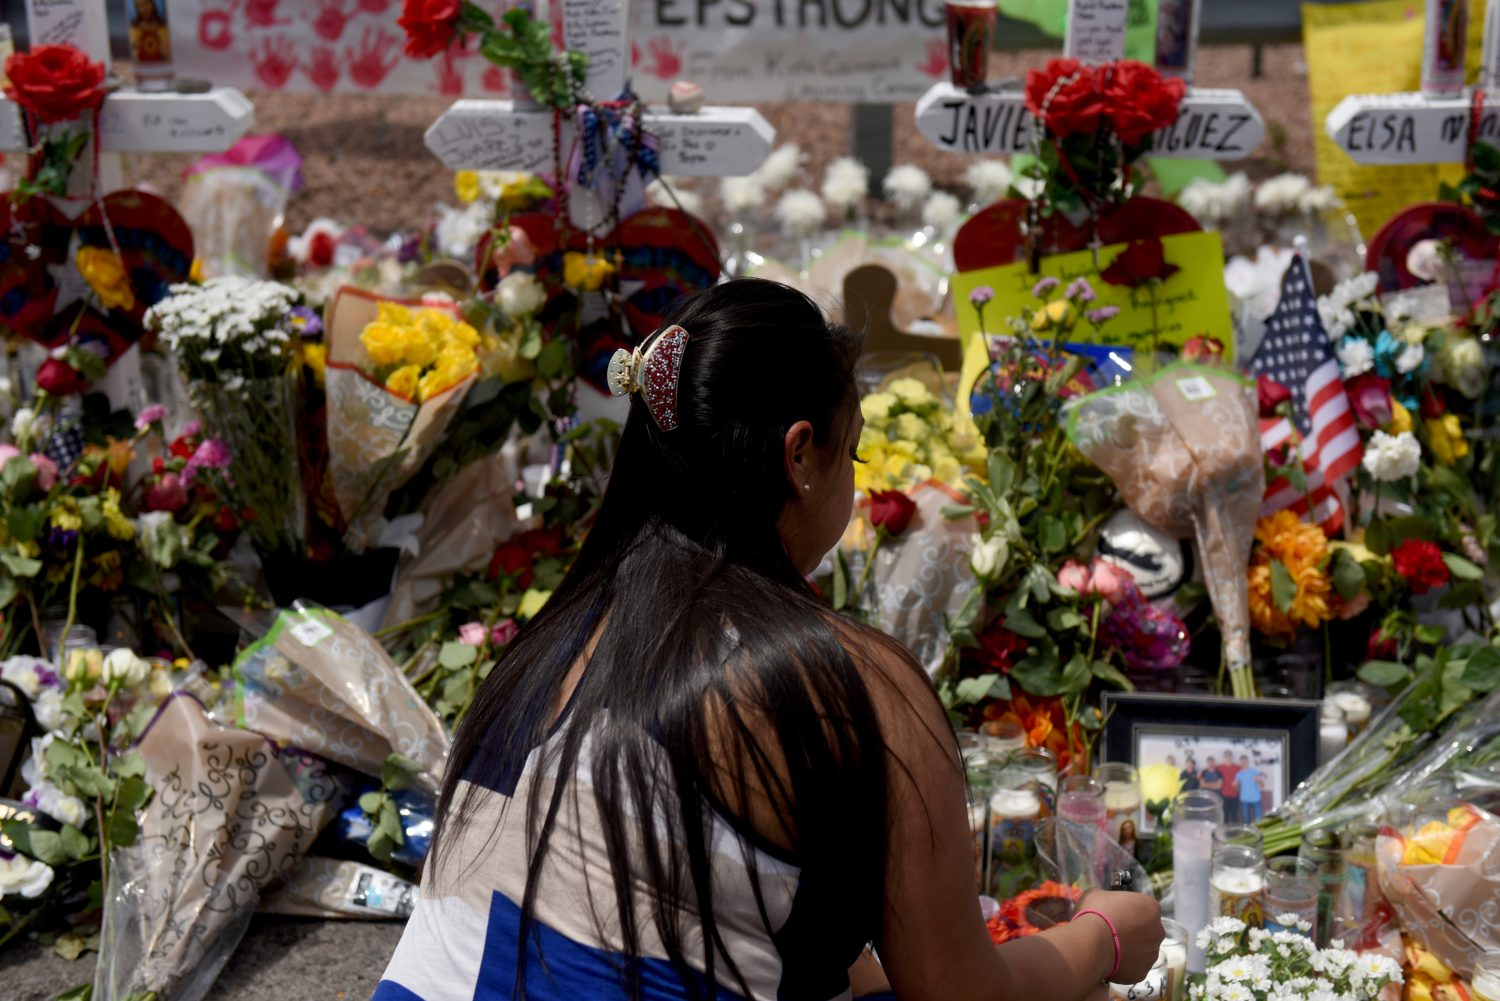 A woman kneels at a memorial three days after a mass shooting at a Walmart store in El Paso, Texas, U.S. August 6, 2019. REUTERS/Callaghan O'Hare